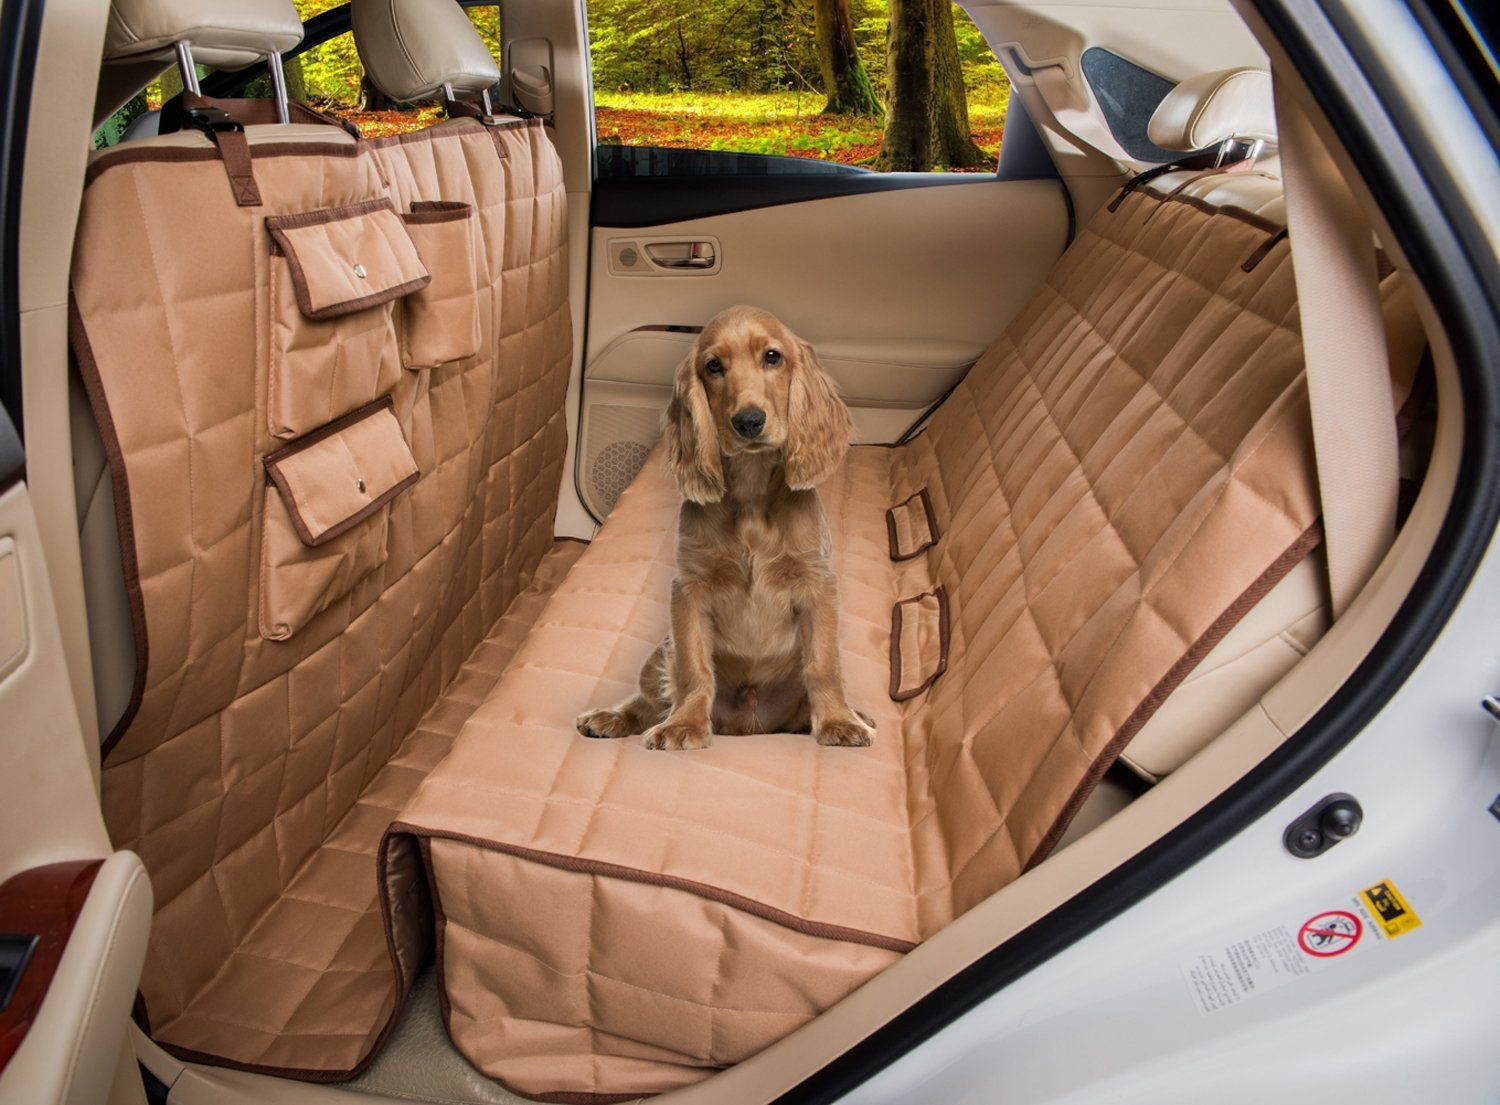 Homeyone Total Coverage Waterproof Dog Pet Travel Back Seat Cover Pad Remarkable Product Available N Dog Car Seat Cover Dog Car Seats Indestructable Dog Bed